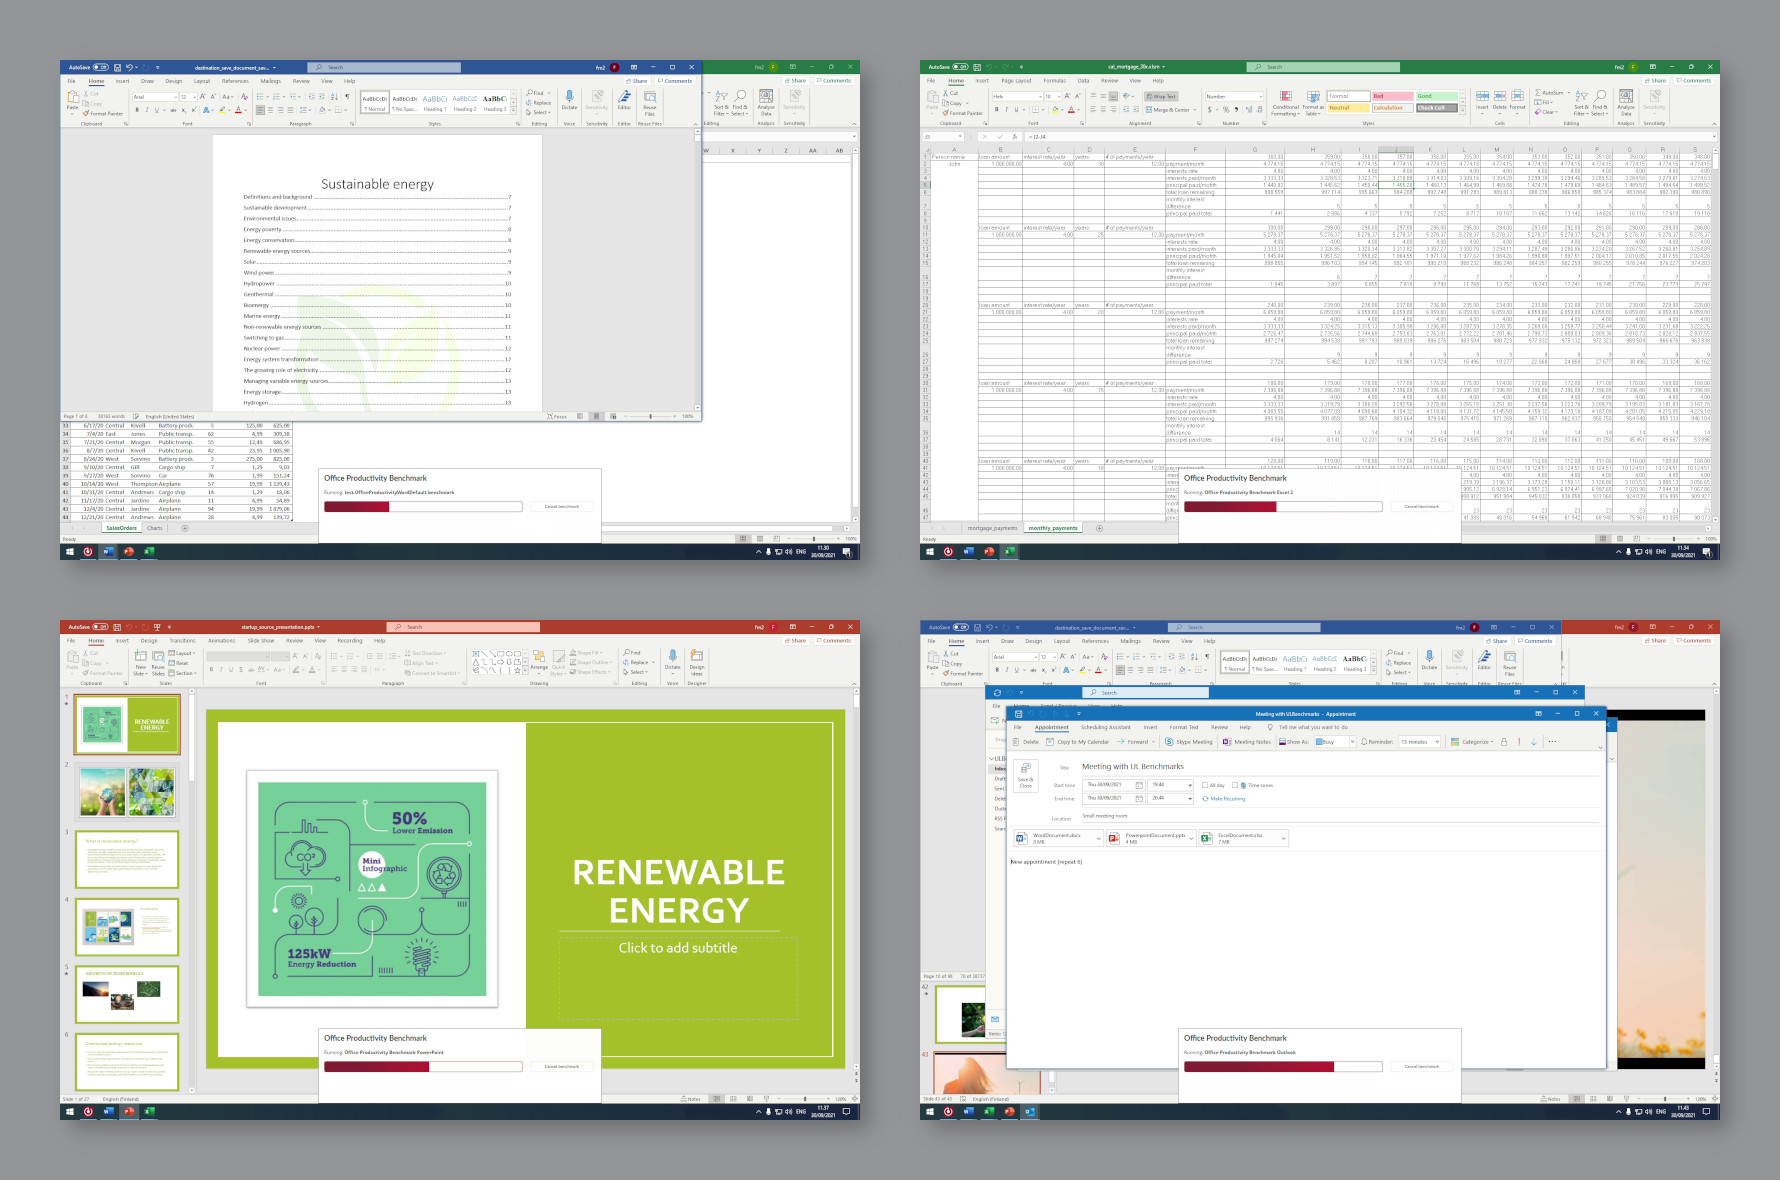 UL Procyon Office Productivity Benchmark uses Microsoft Word, Excel, PowerPoint and Outlook